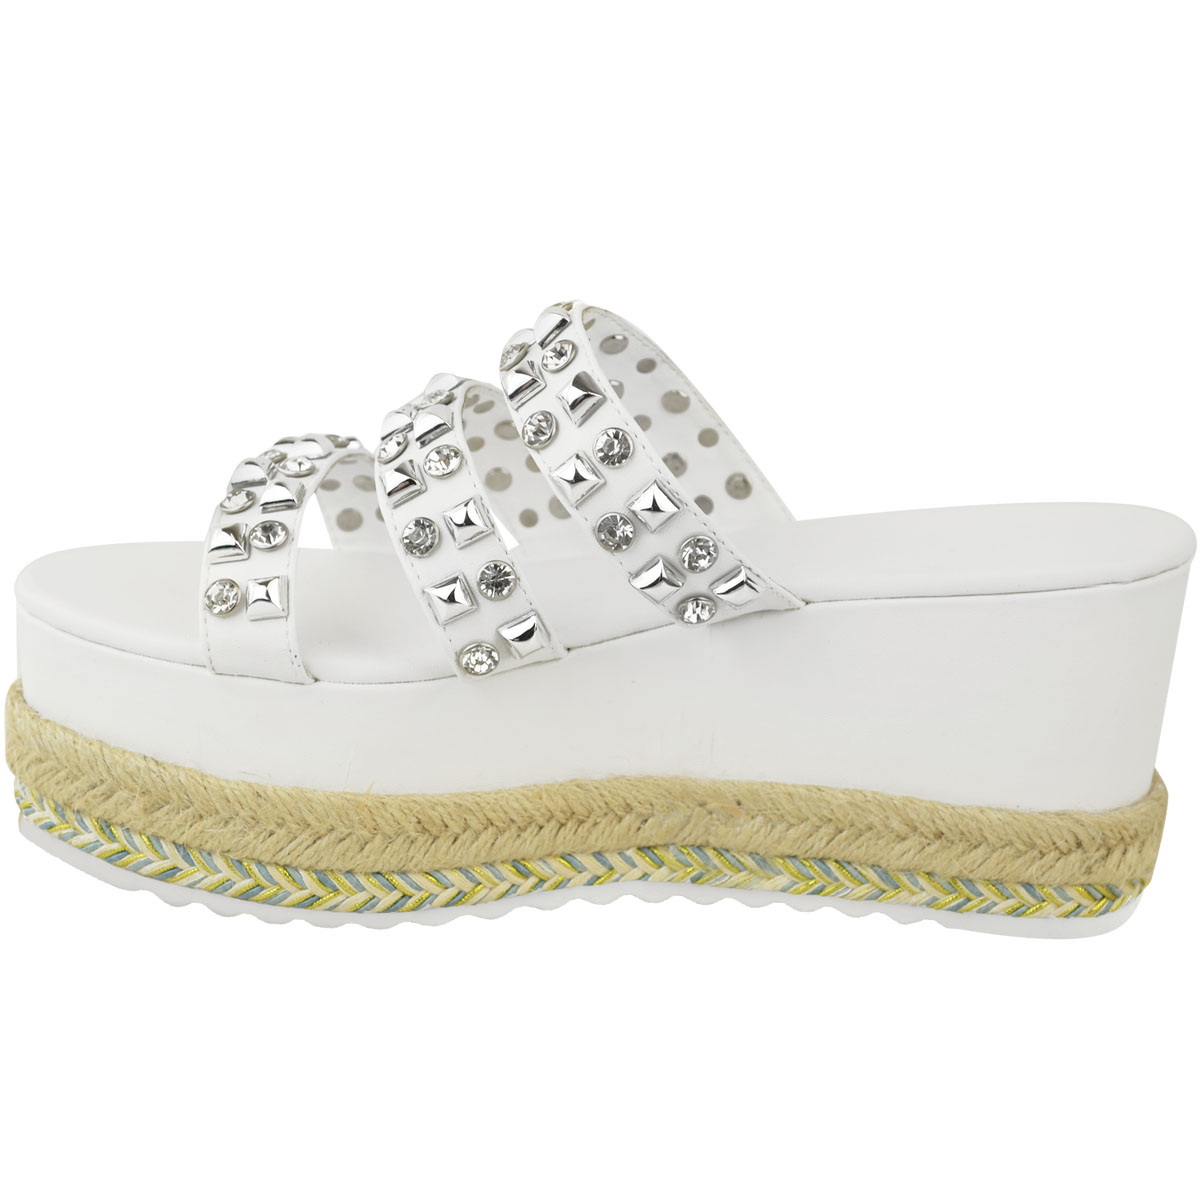 Womens-Ladies-Flatforms-Sandals-Espadrilles-Embellished-Stud-Jewel-Wedges-Size thumbnail 8